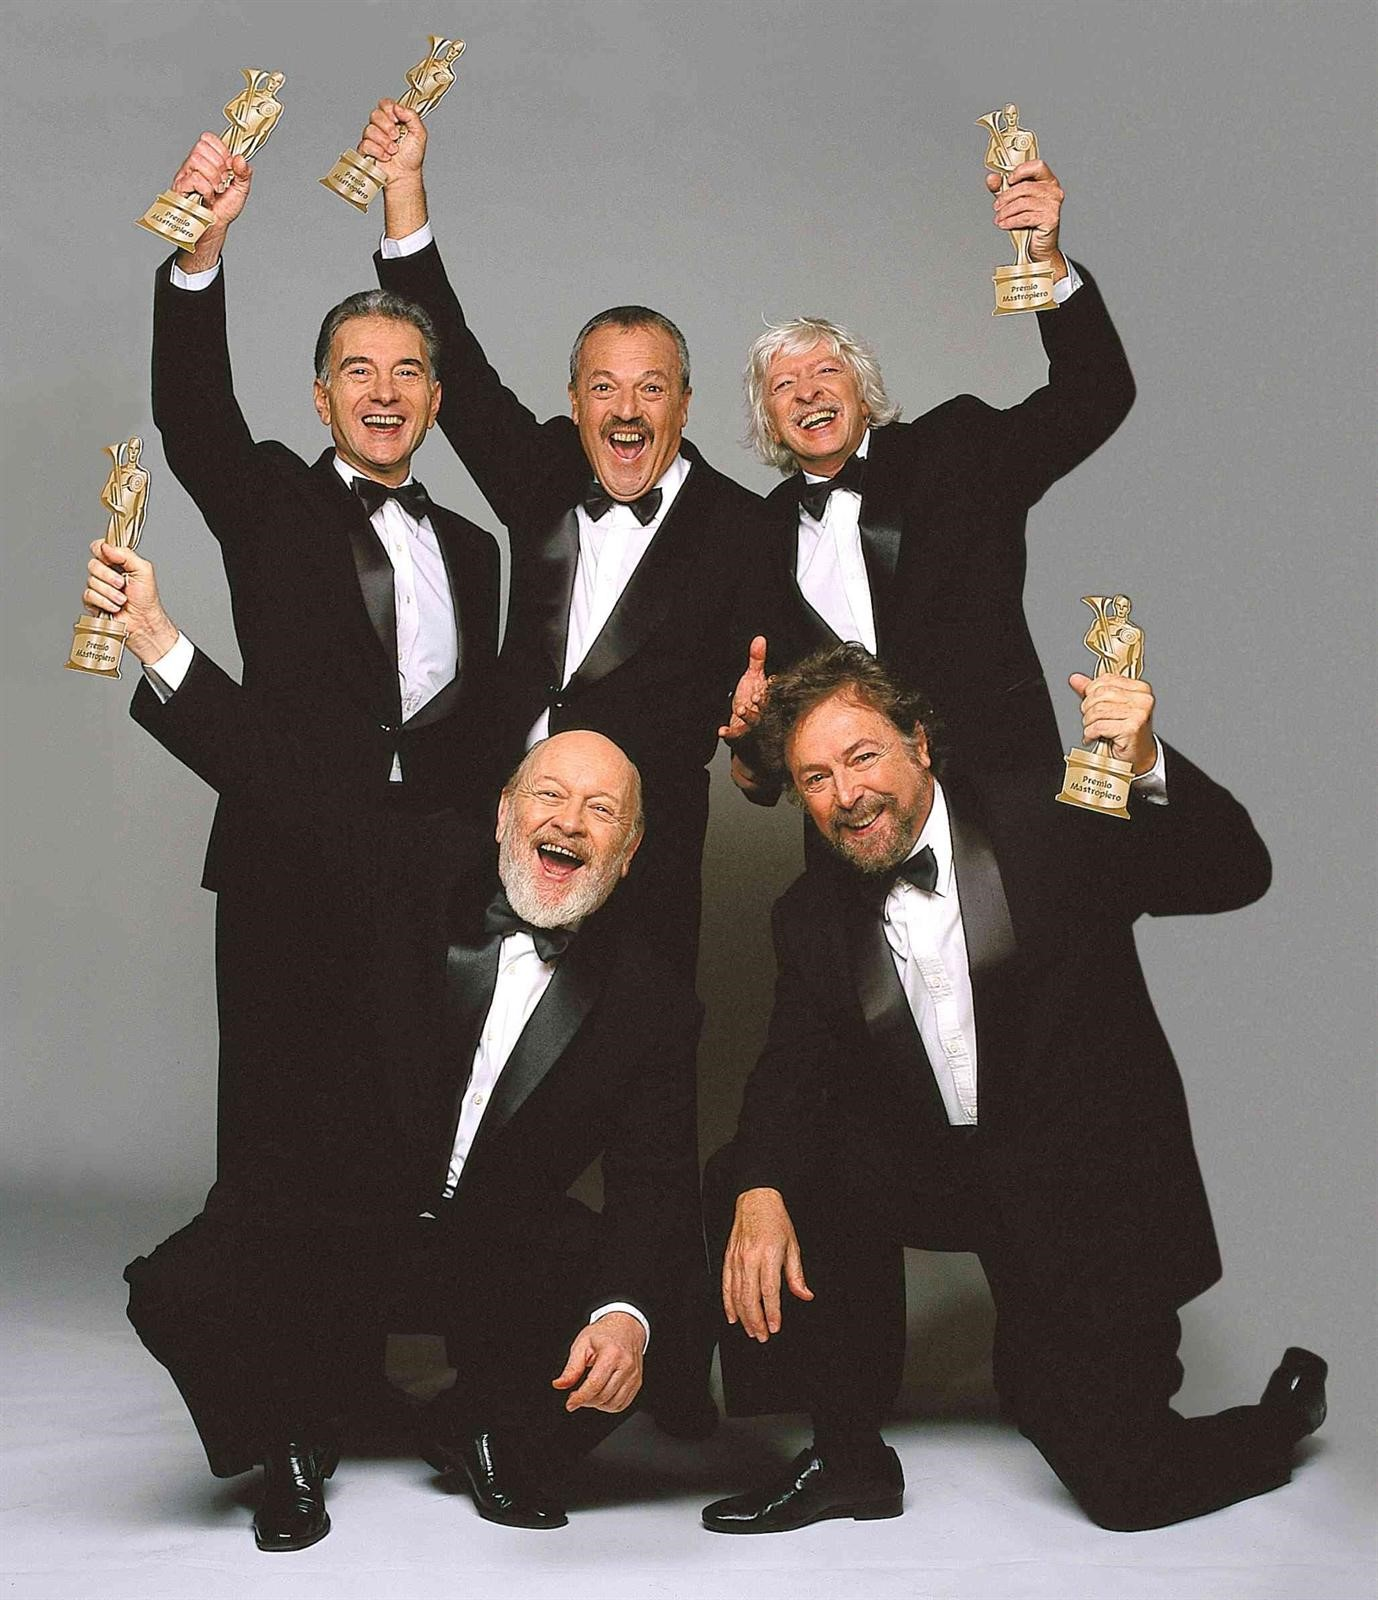 Les luthiers techbizdesign hall of fame